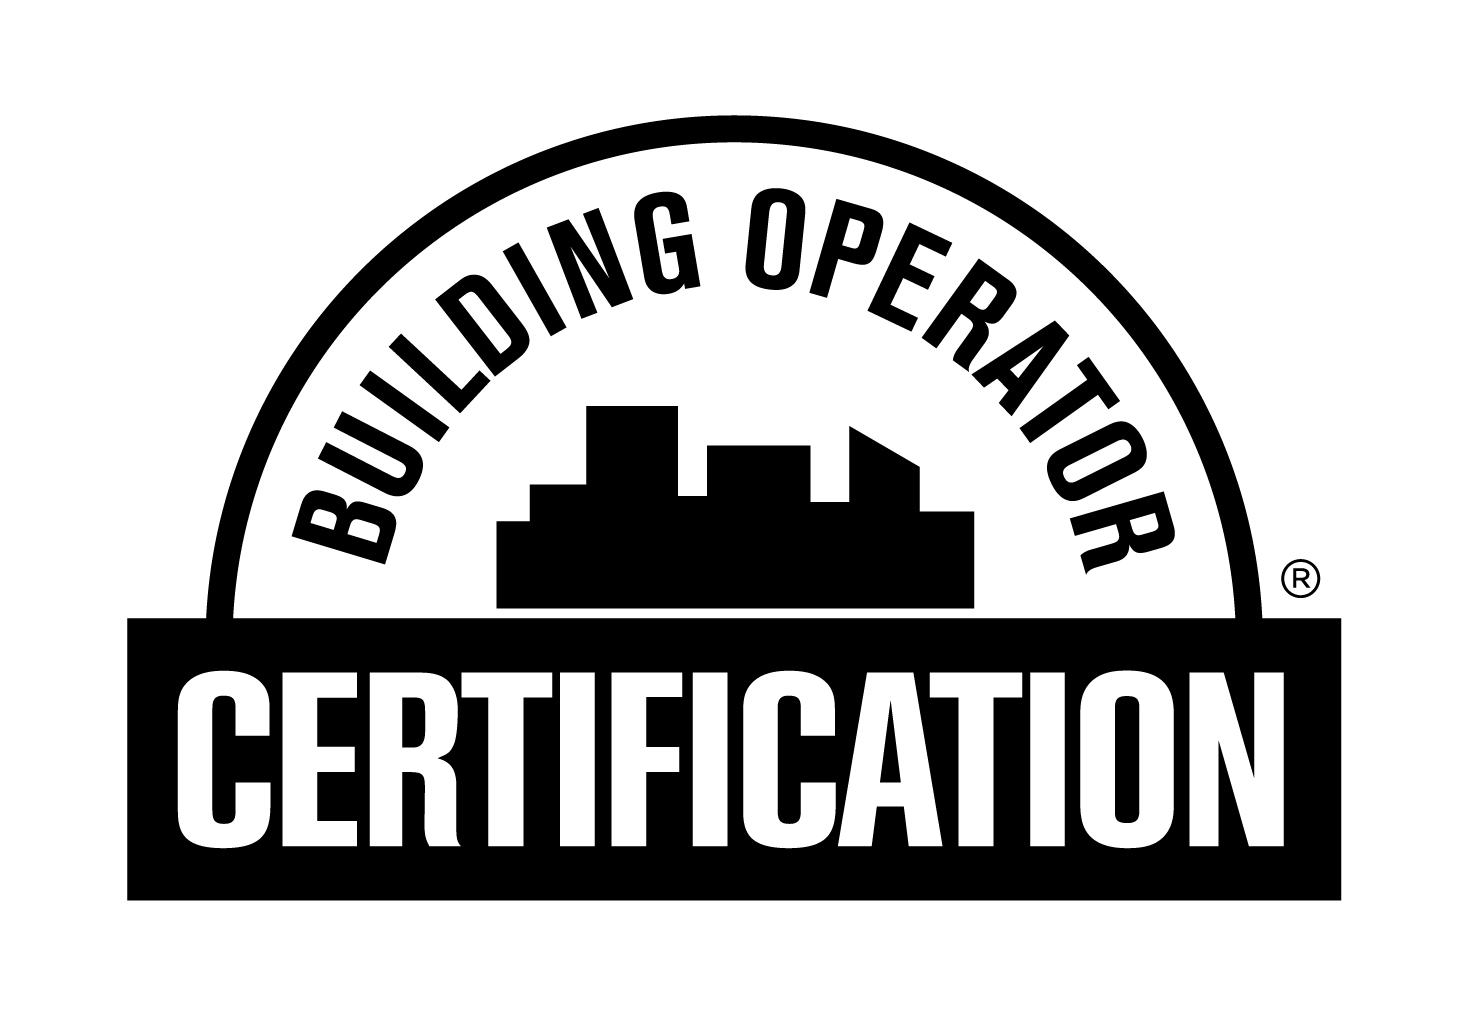 Building Operator Certification (BOC) logo